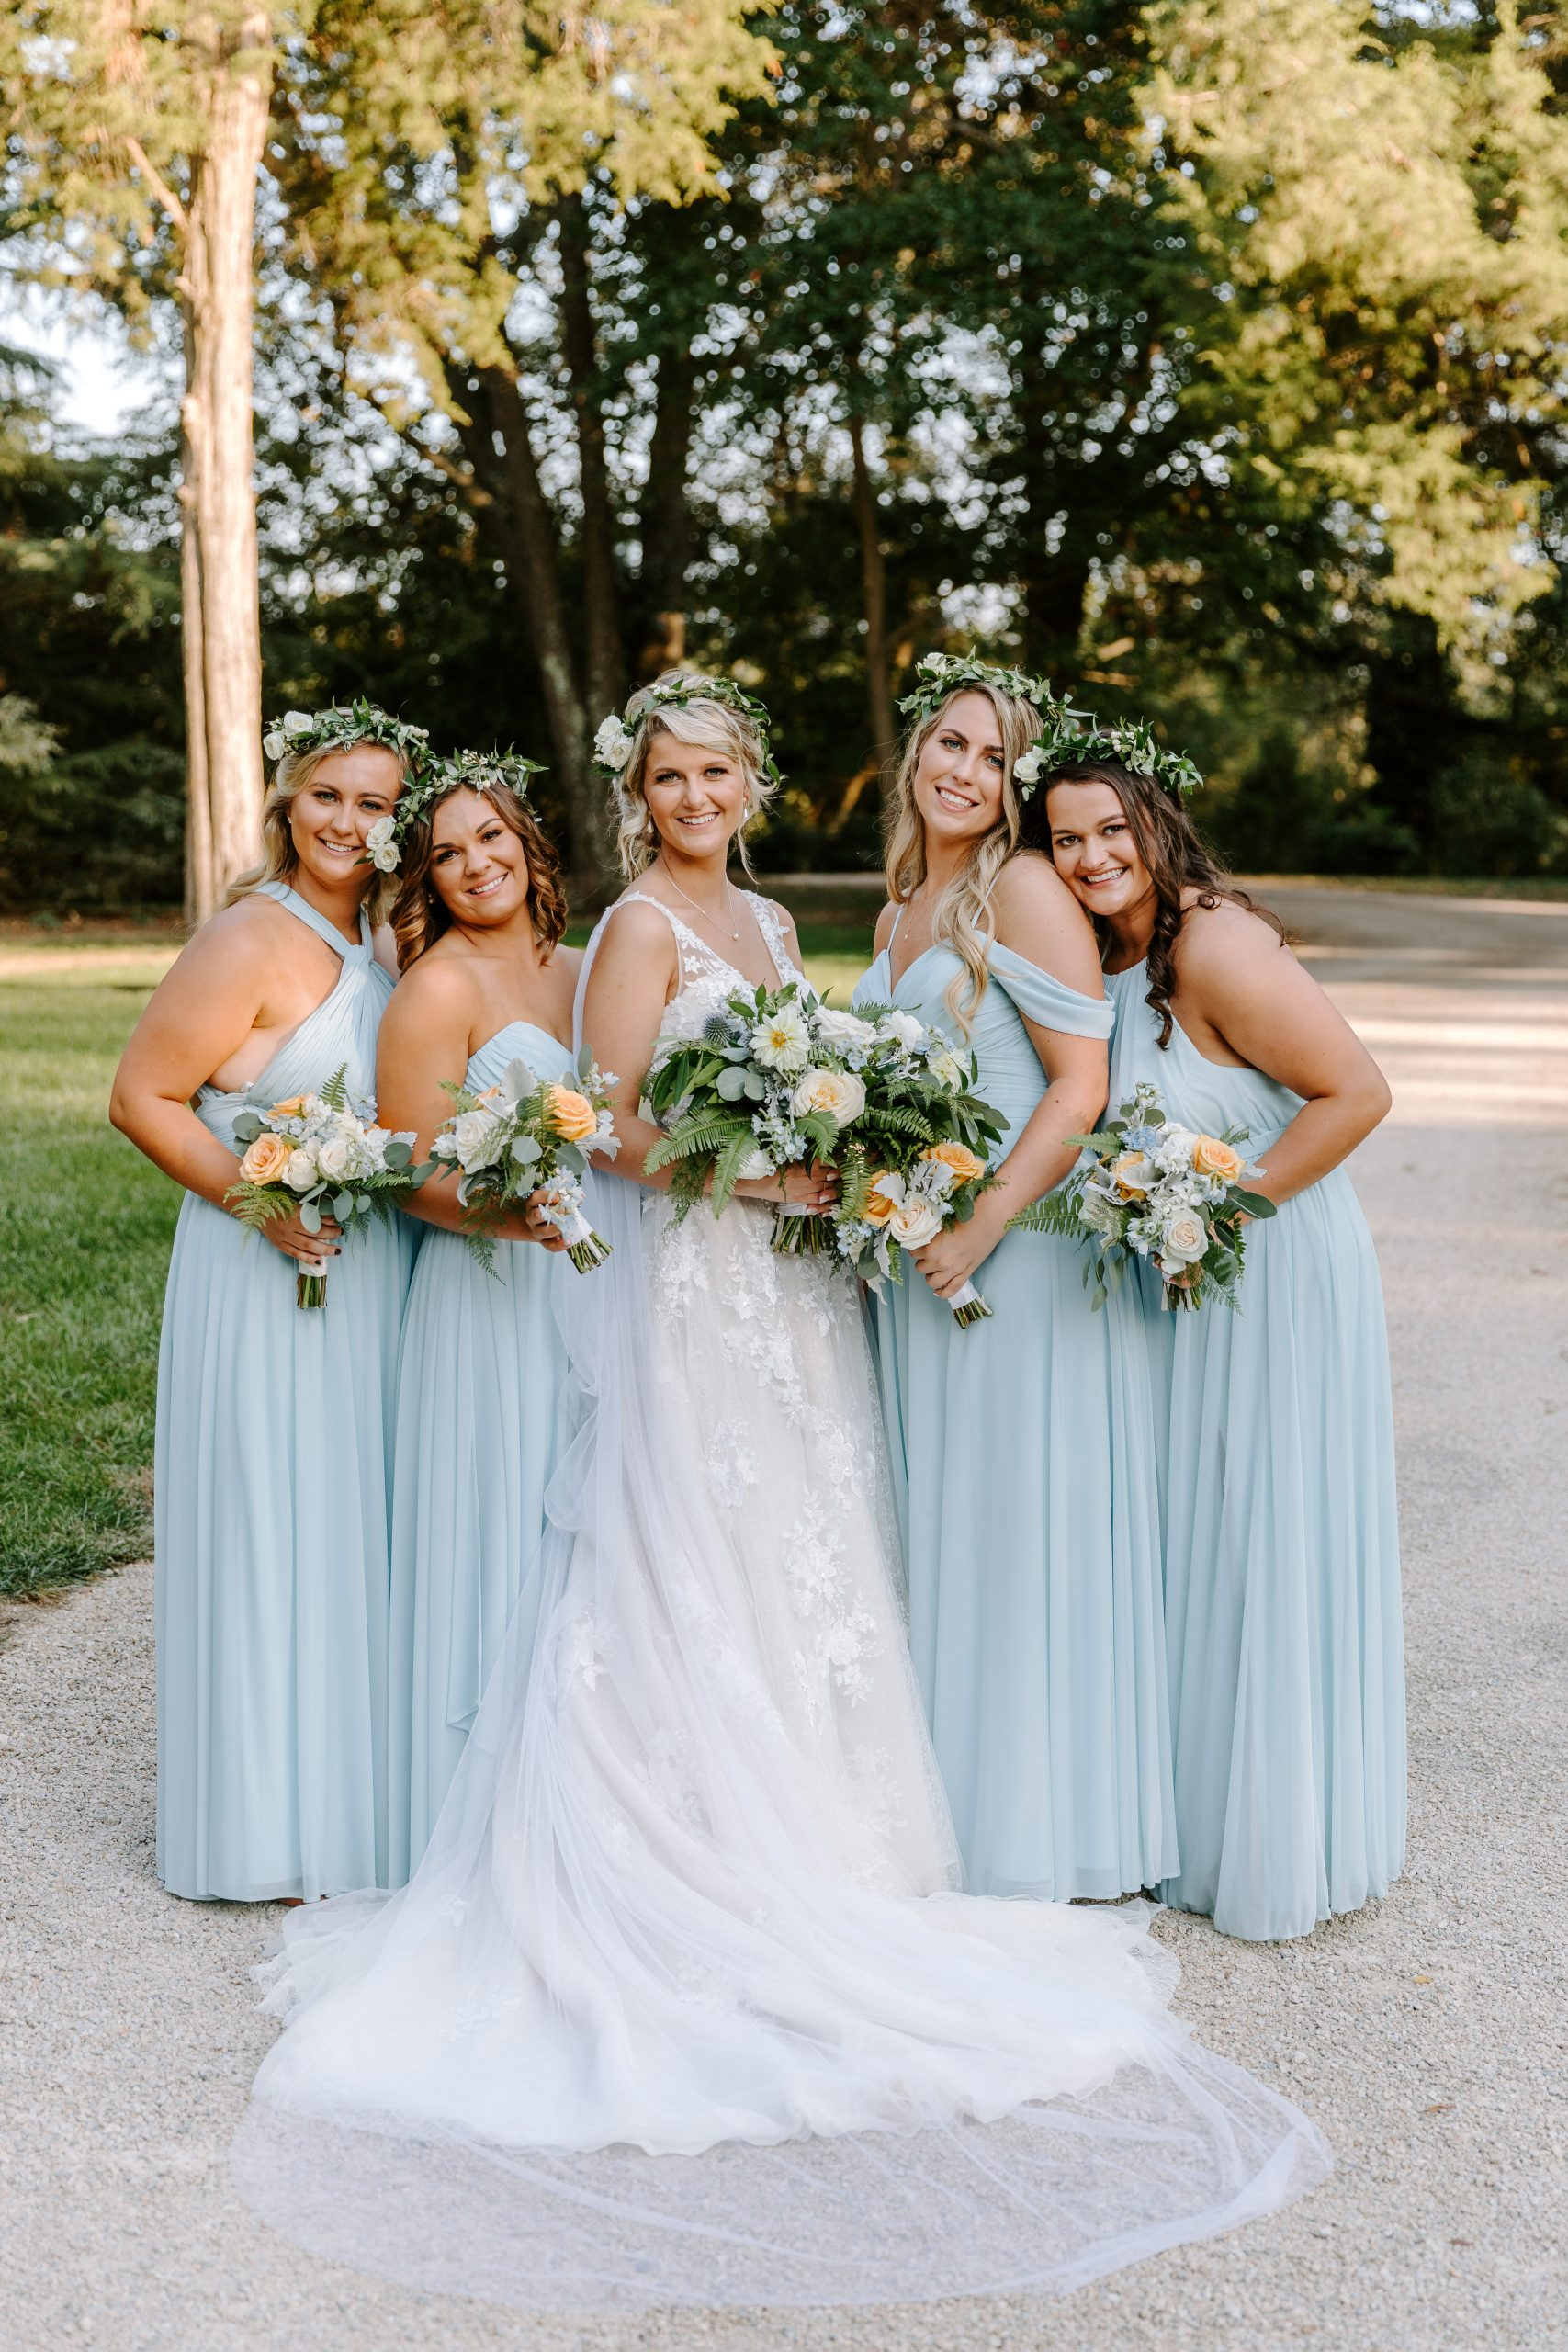 Real Bride Wearing Meryl Wedding Dress with Bridesmaids Wearing Blue Dresses for Summer Wedding